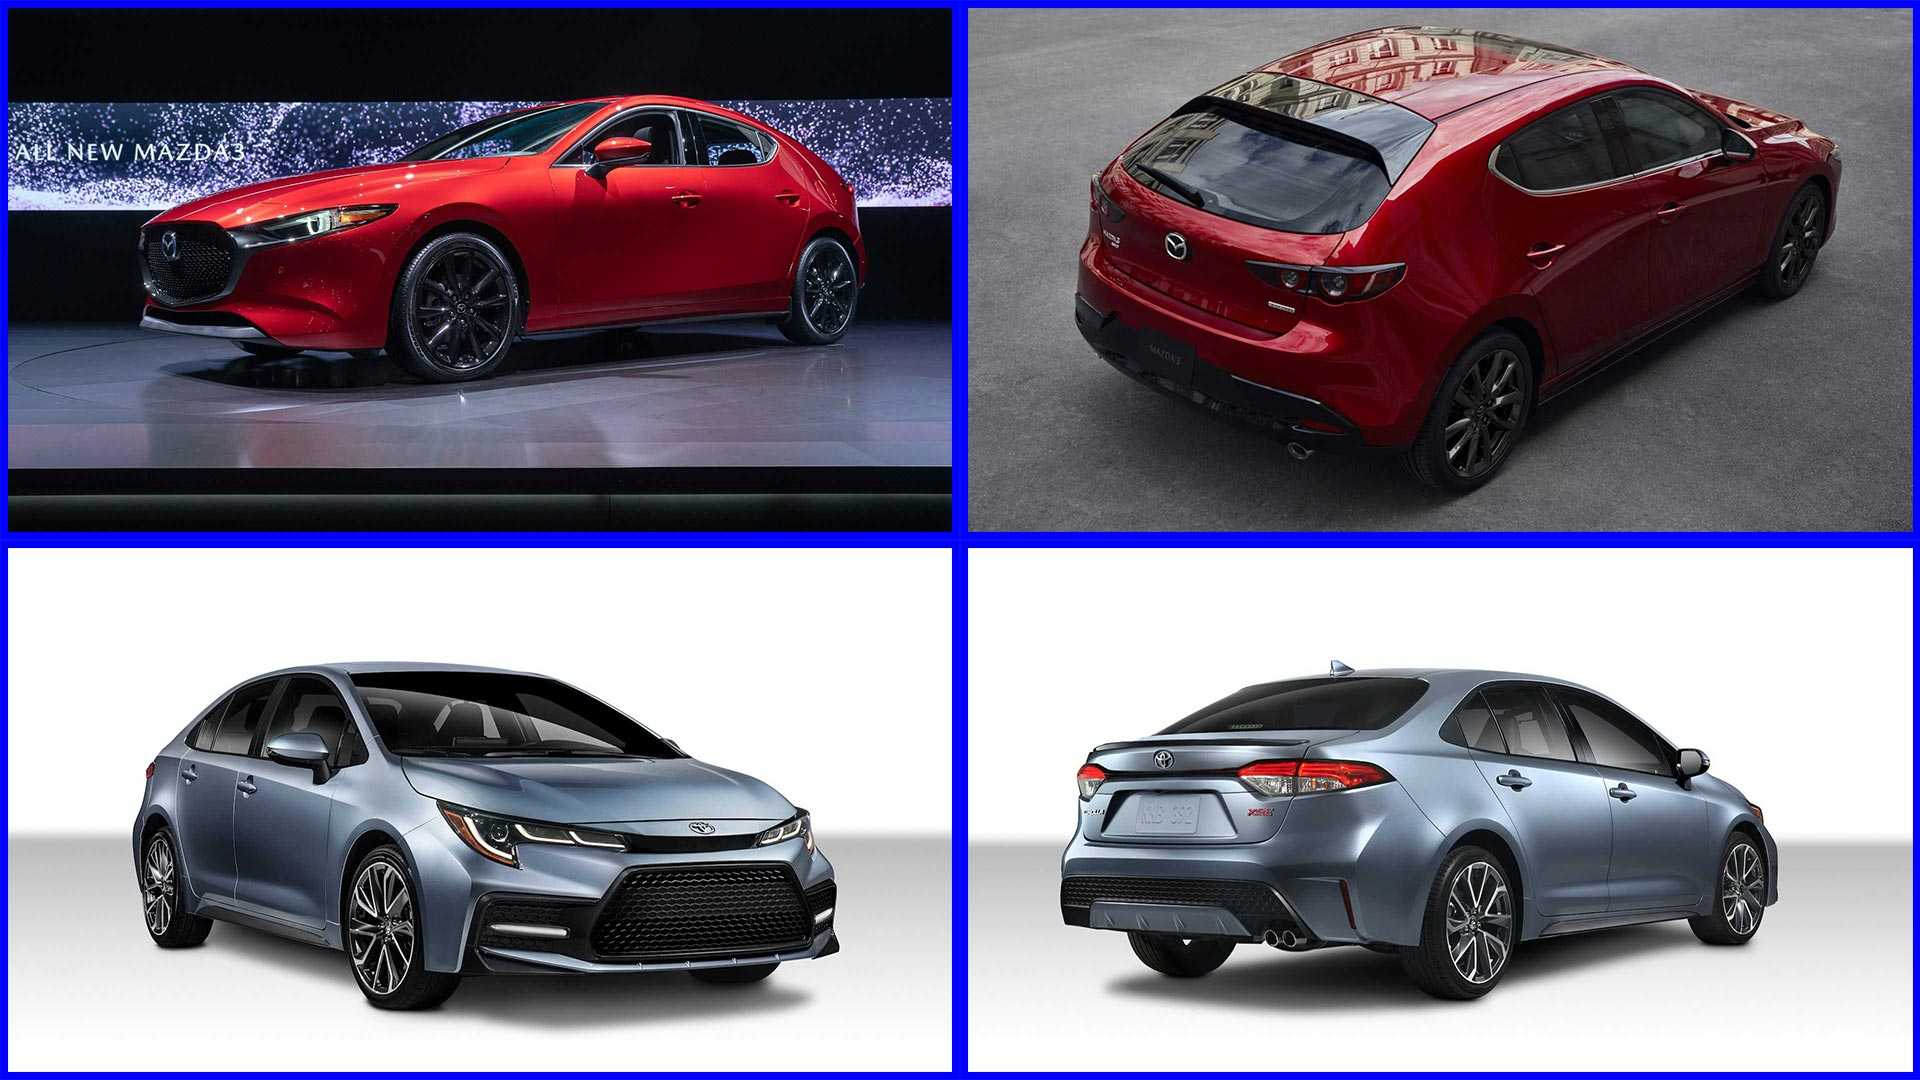 77 All New Corolla 2020 Vs Mazda 3 Speed Test